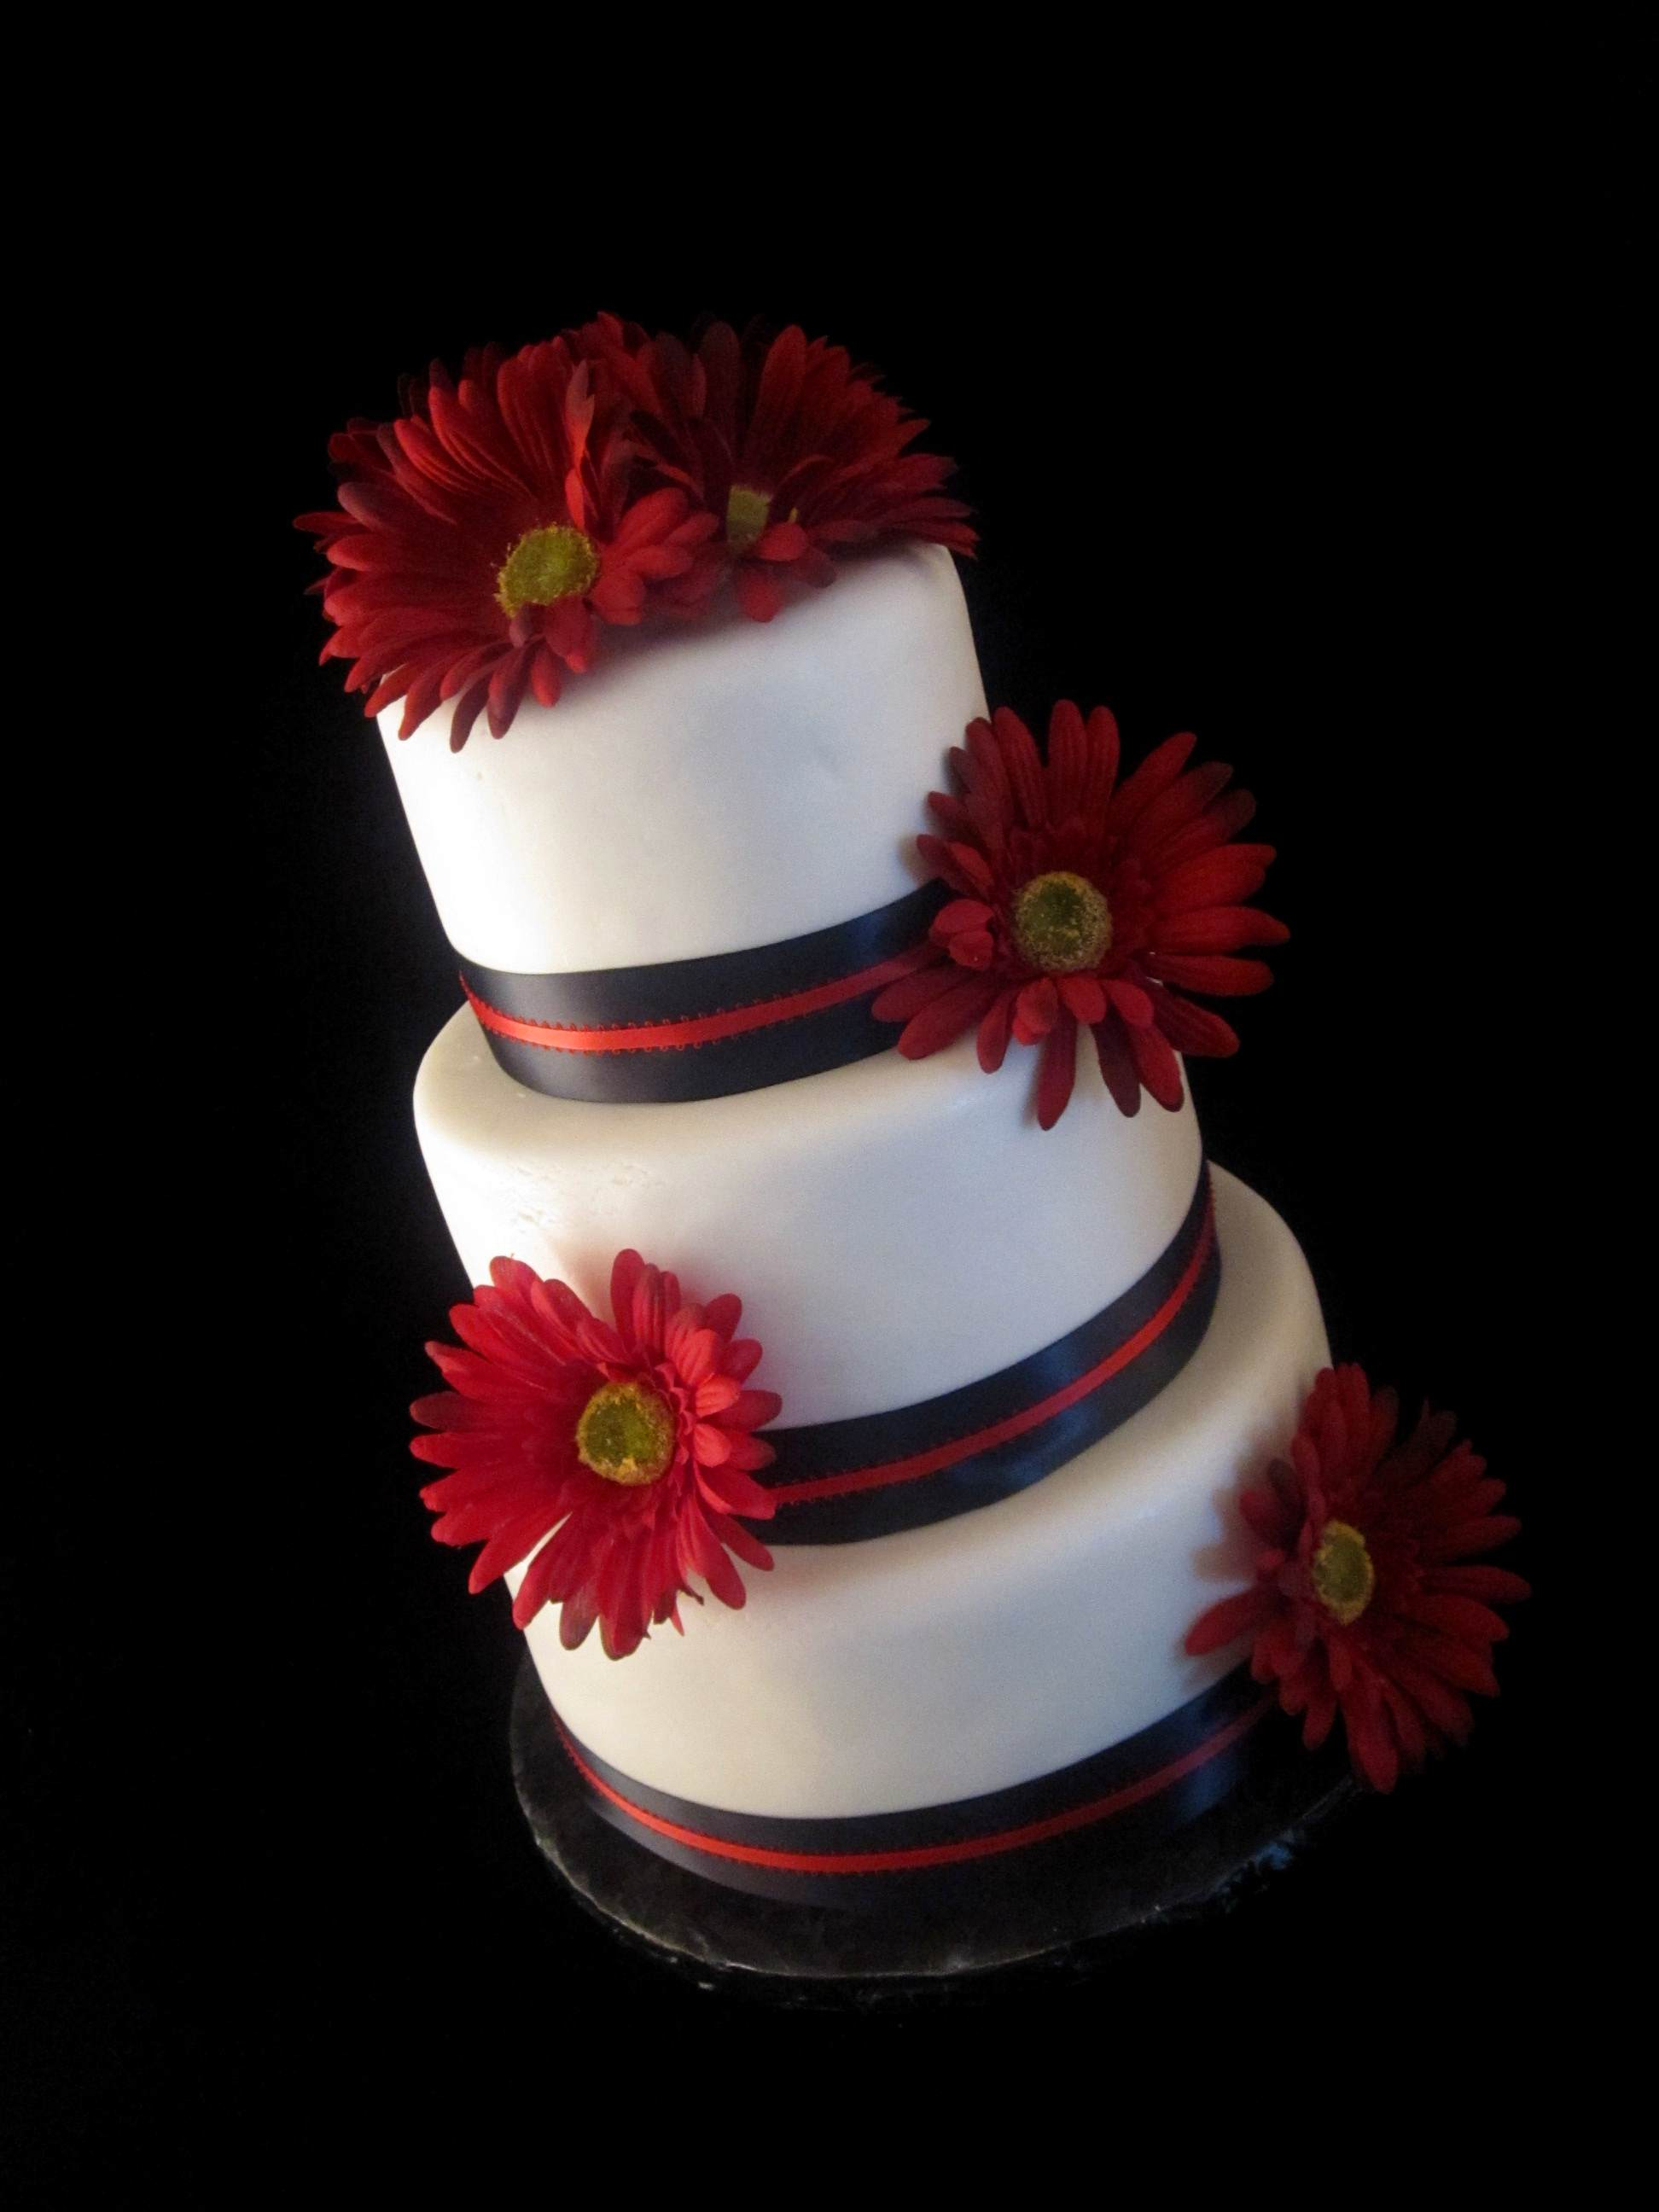 Black and White Wedding Cakes That Make Your Mouth Water